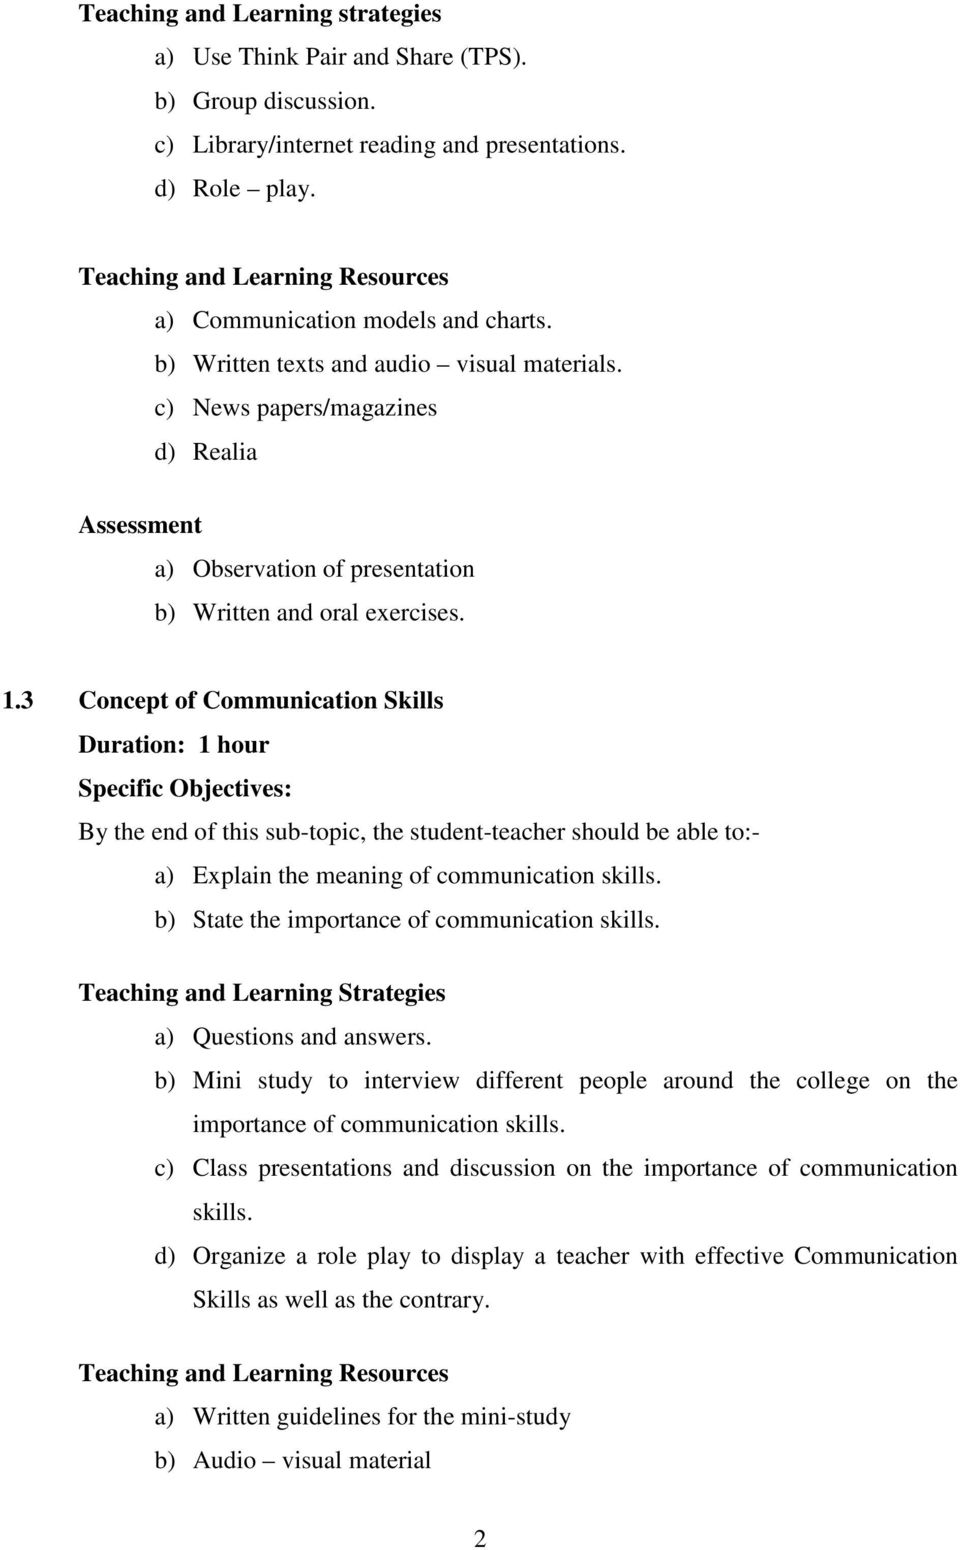 COMMUNICATION SKILLS SYLLABUS FOR THE CERTIFICATE COURSE IN